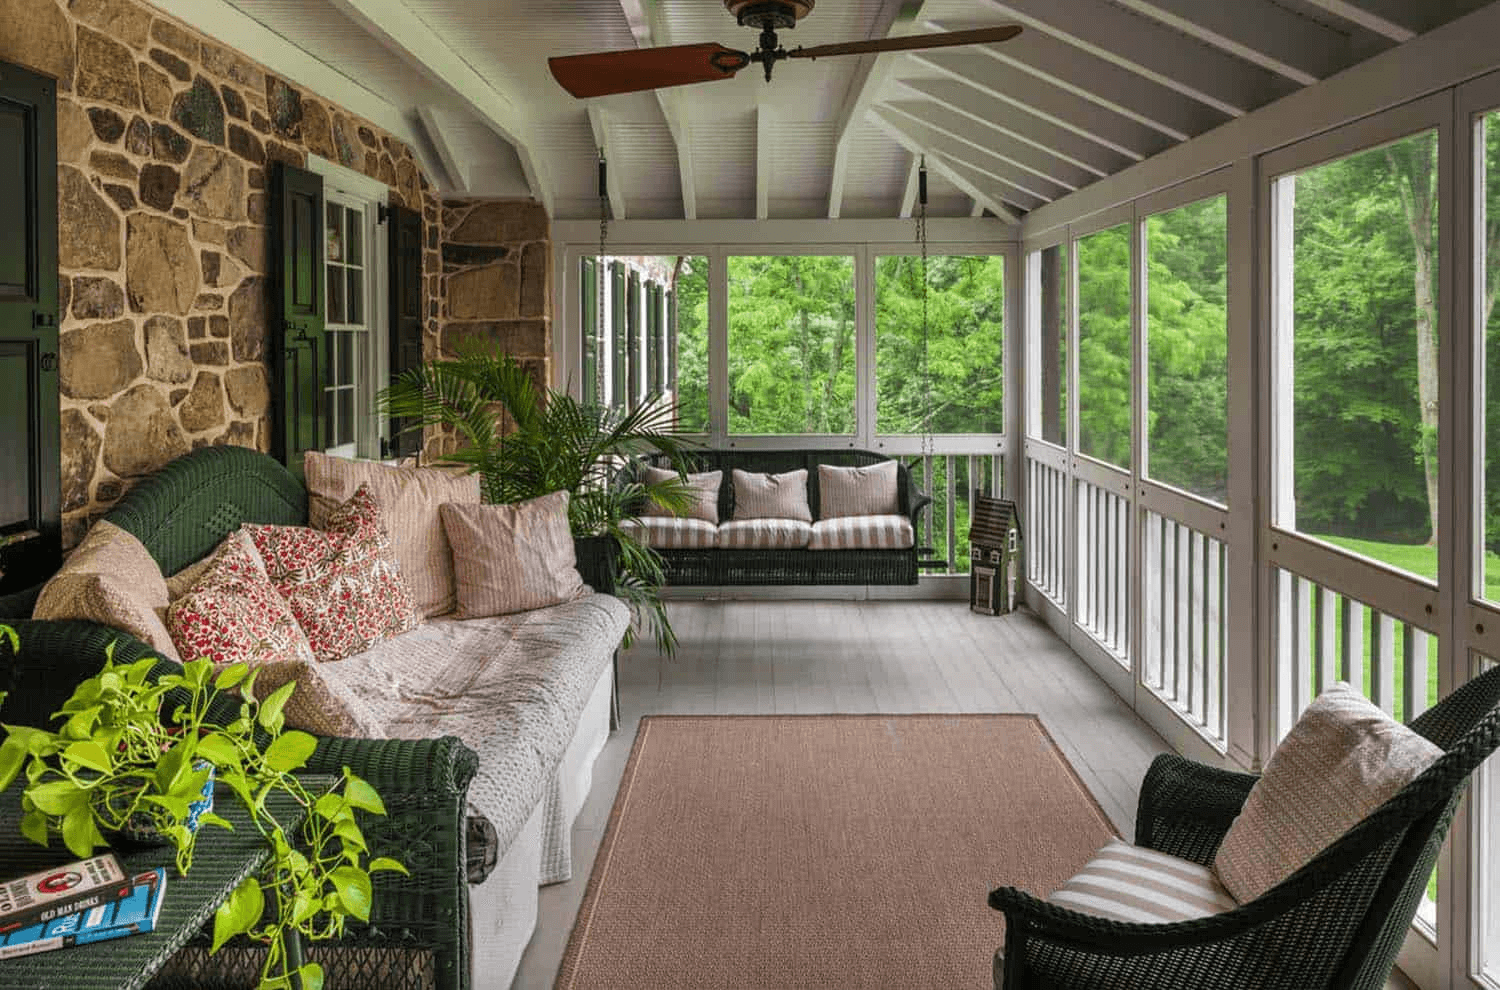 PAINTED MAHOGANY FLOORING OPTION FOR SCREENED PORCH